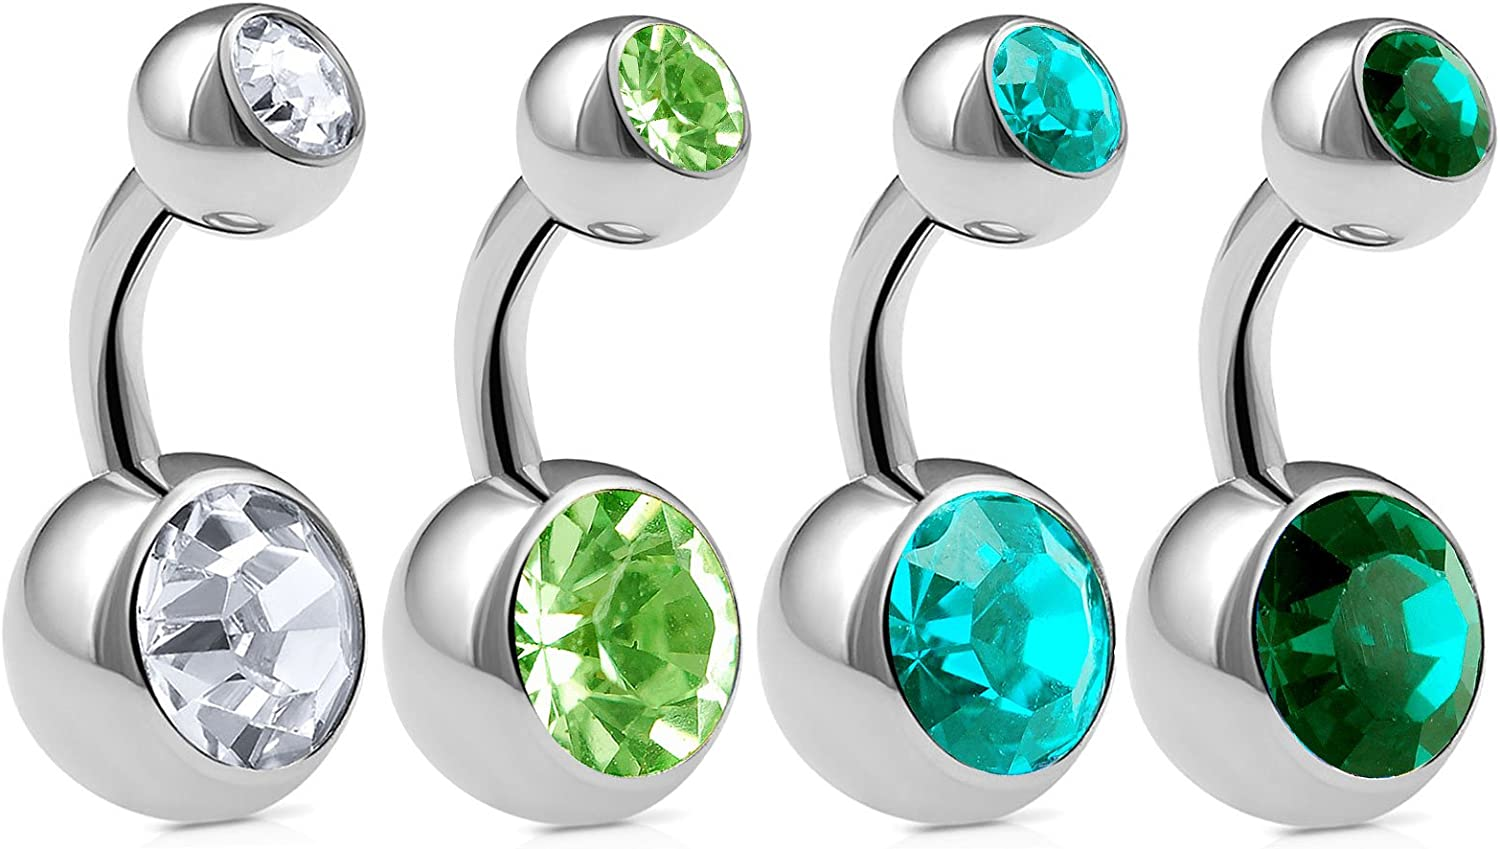 4pcs 14g 1/4 Short Belly Button Ring Navel Piercing Surgical Steel Crystal Bars Earrings Studs Non Dangle AXCZ